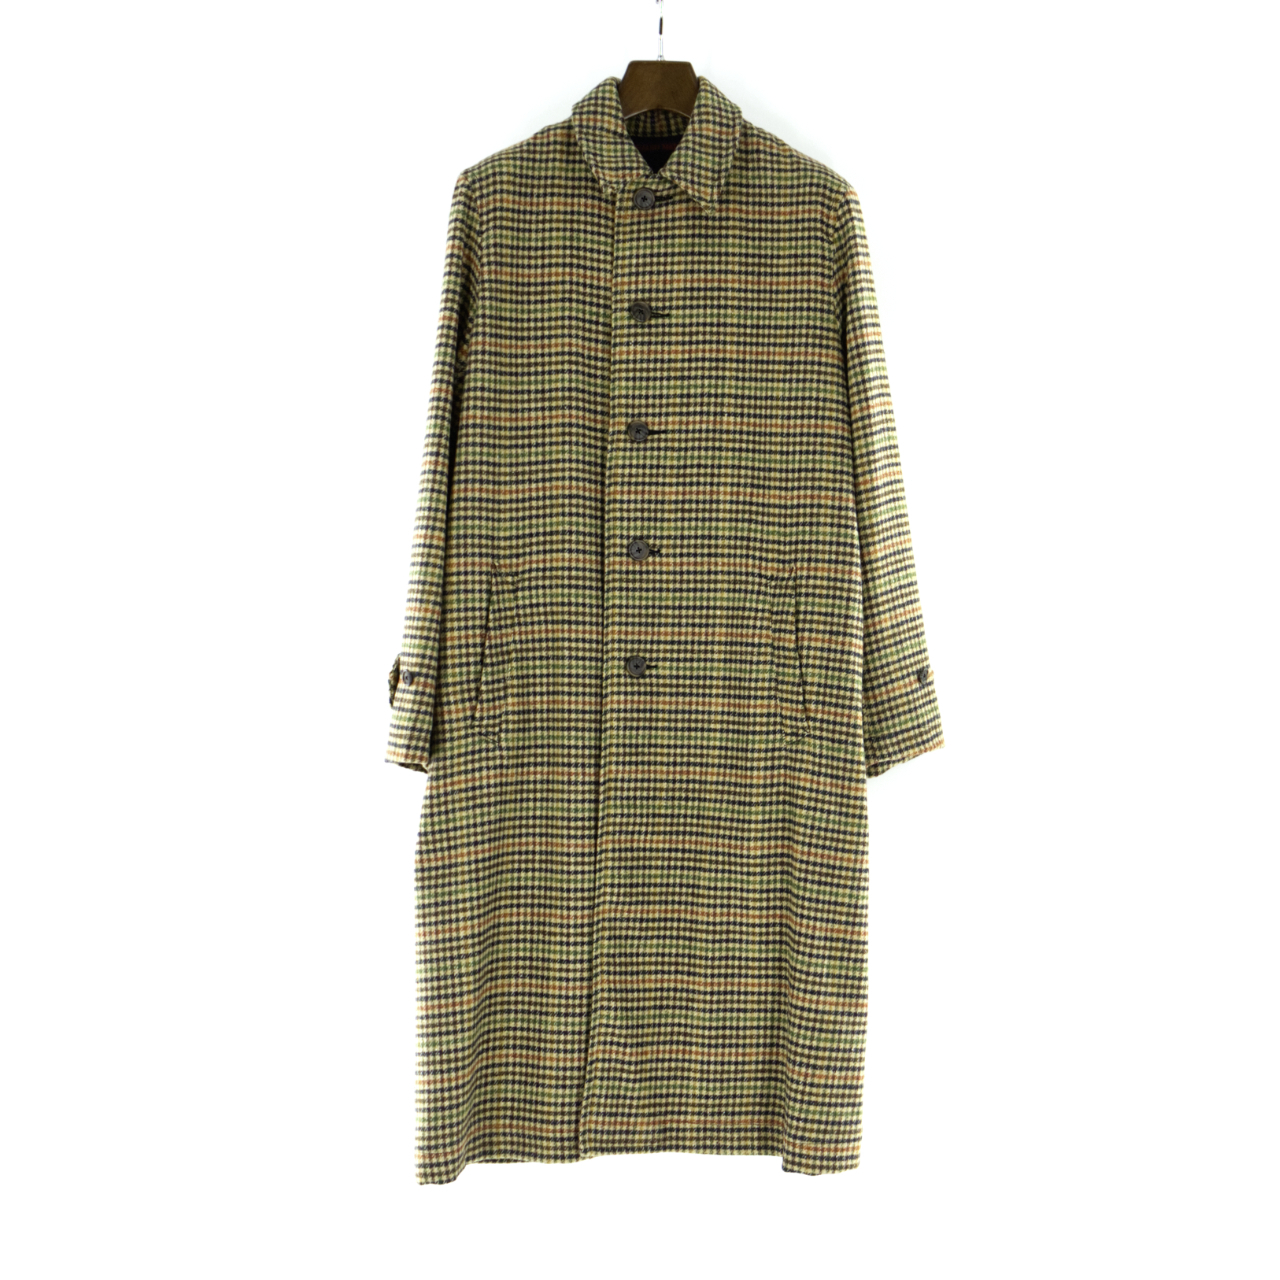 GAIJIN MADE | Gun Club Check Balmacaan Coat - Beige